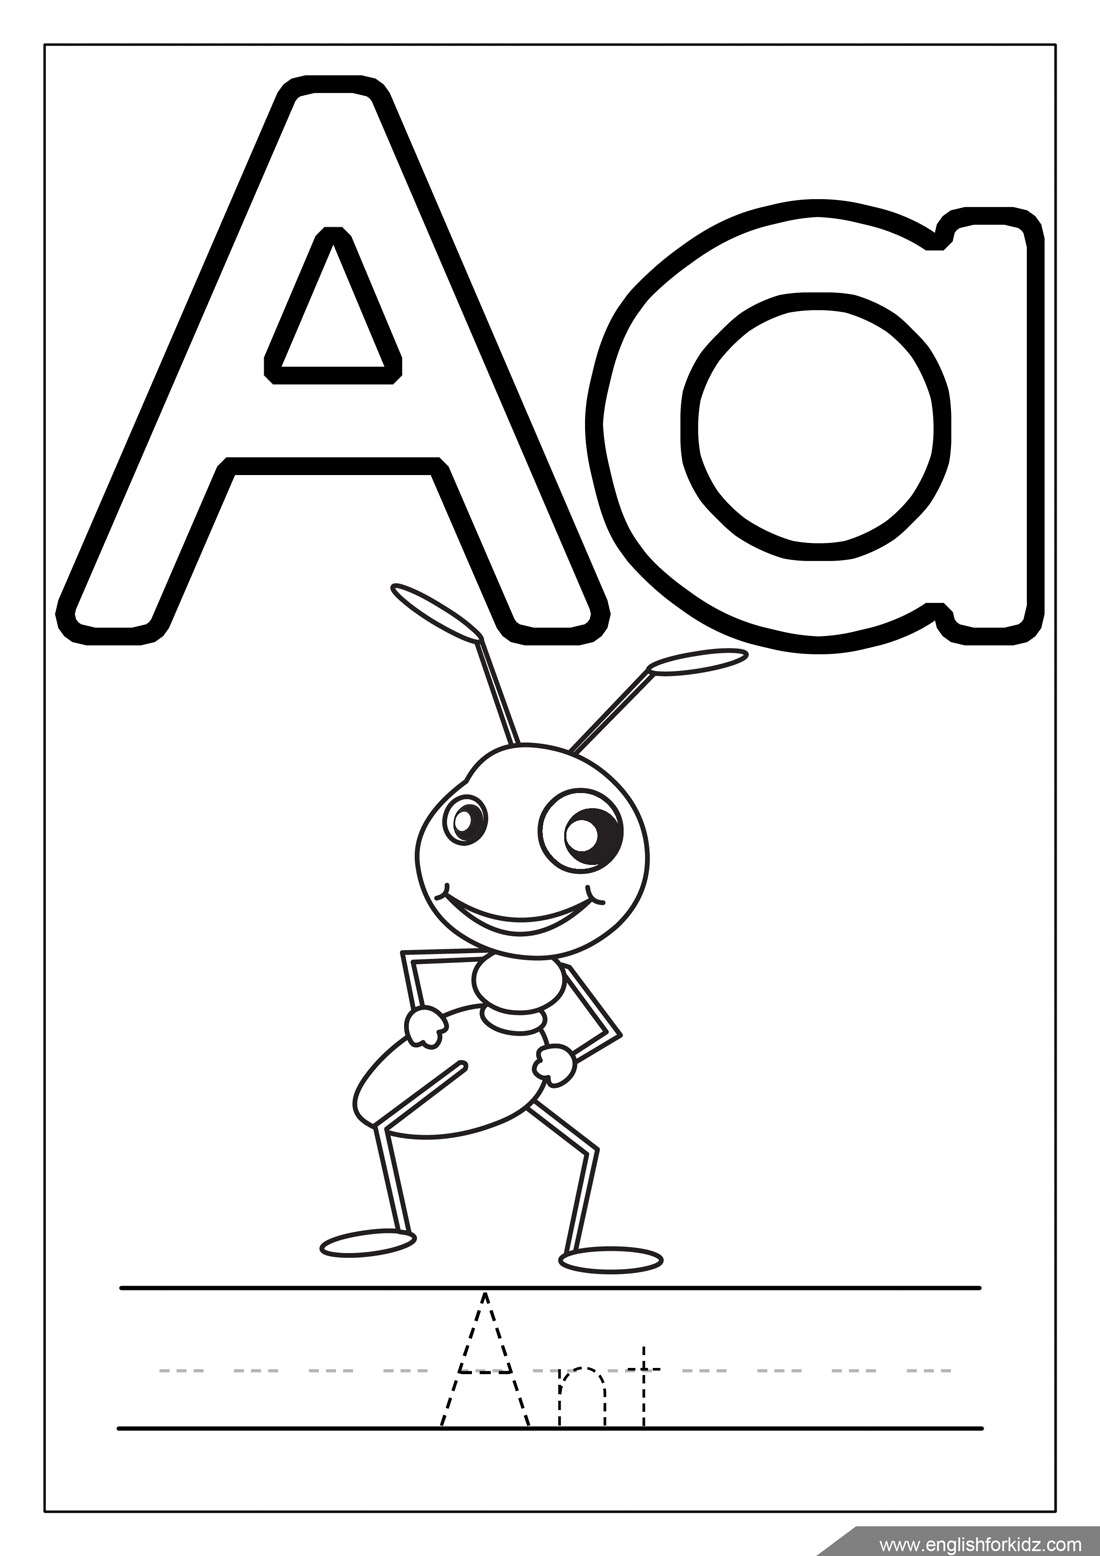 Printable Alphabet Coloring Pages (Letters Influenza A